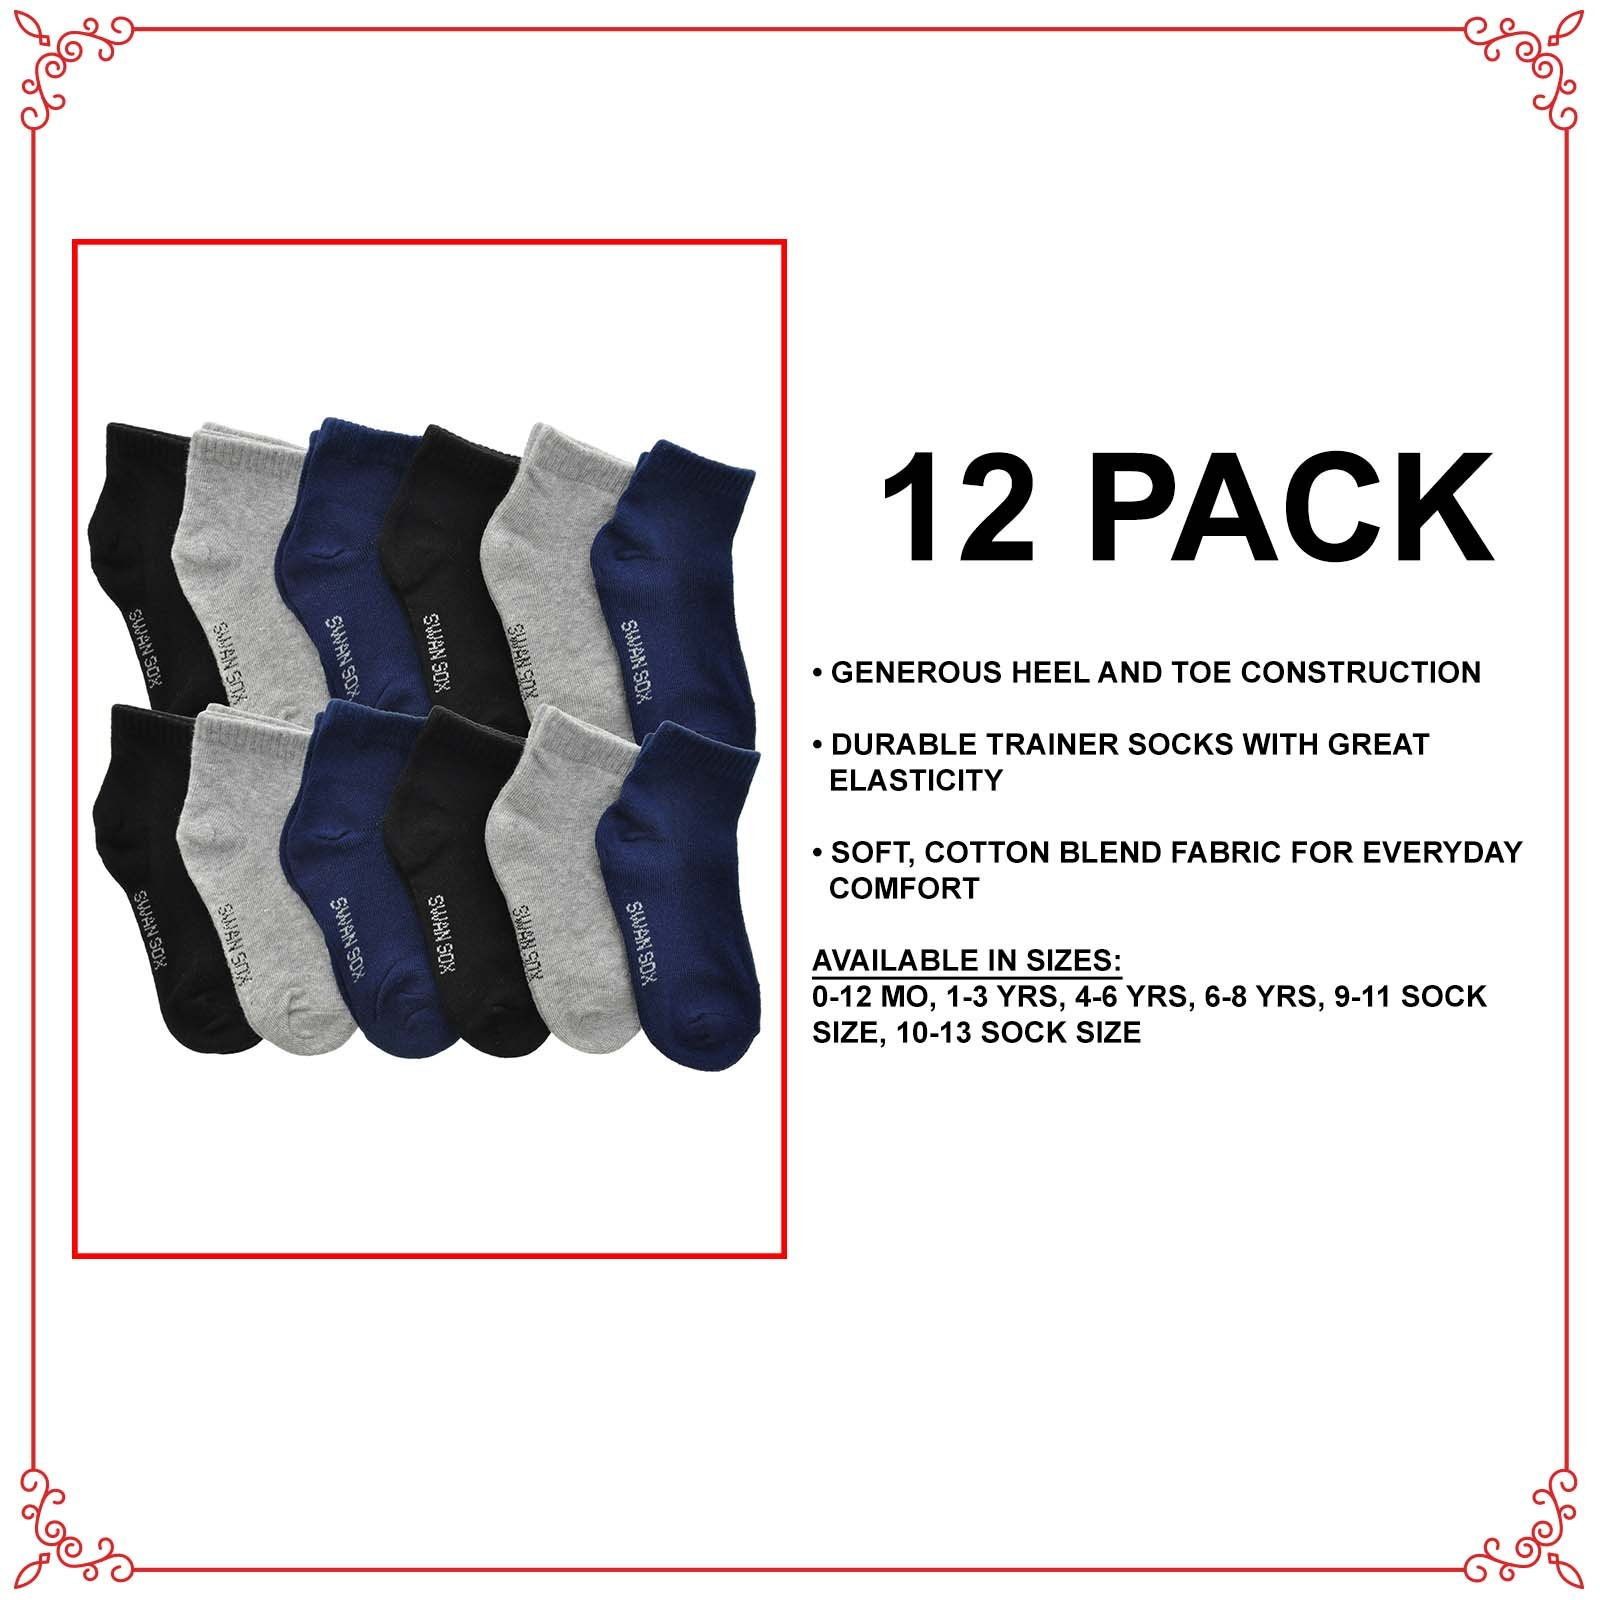 Angelina Cotton Low Cut Trainer Socks (12-Pack), 2305_GNB_4-6 by Angelina (Image #2)